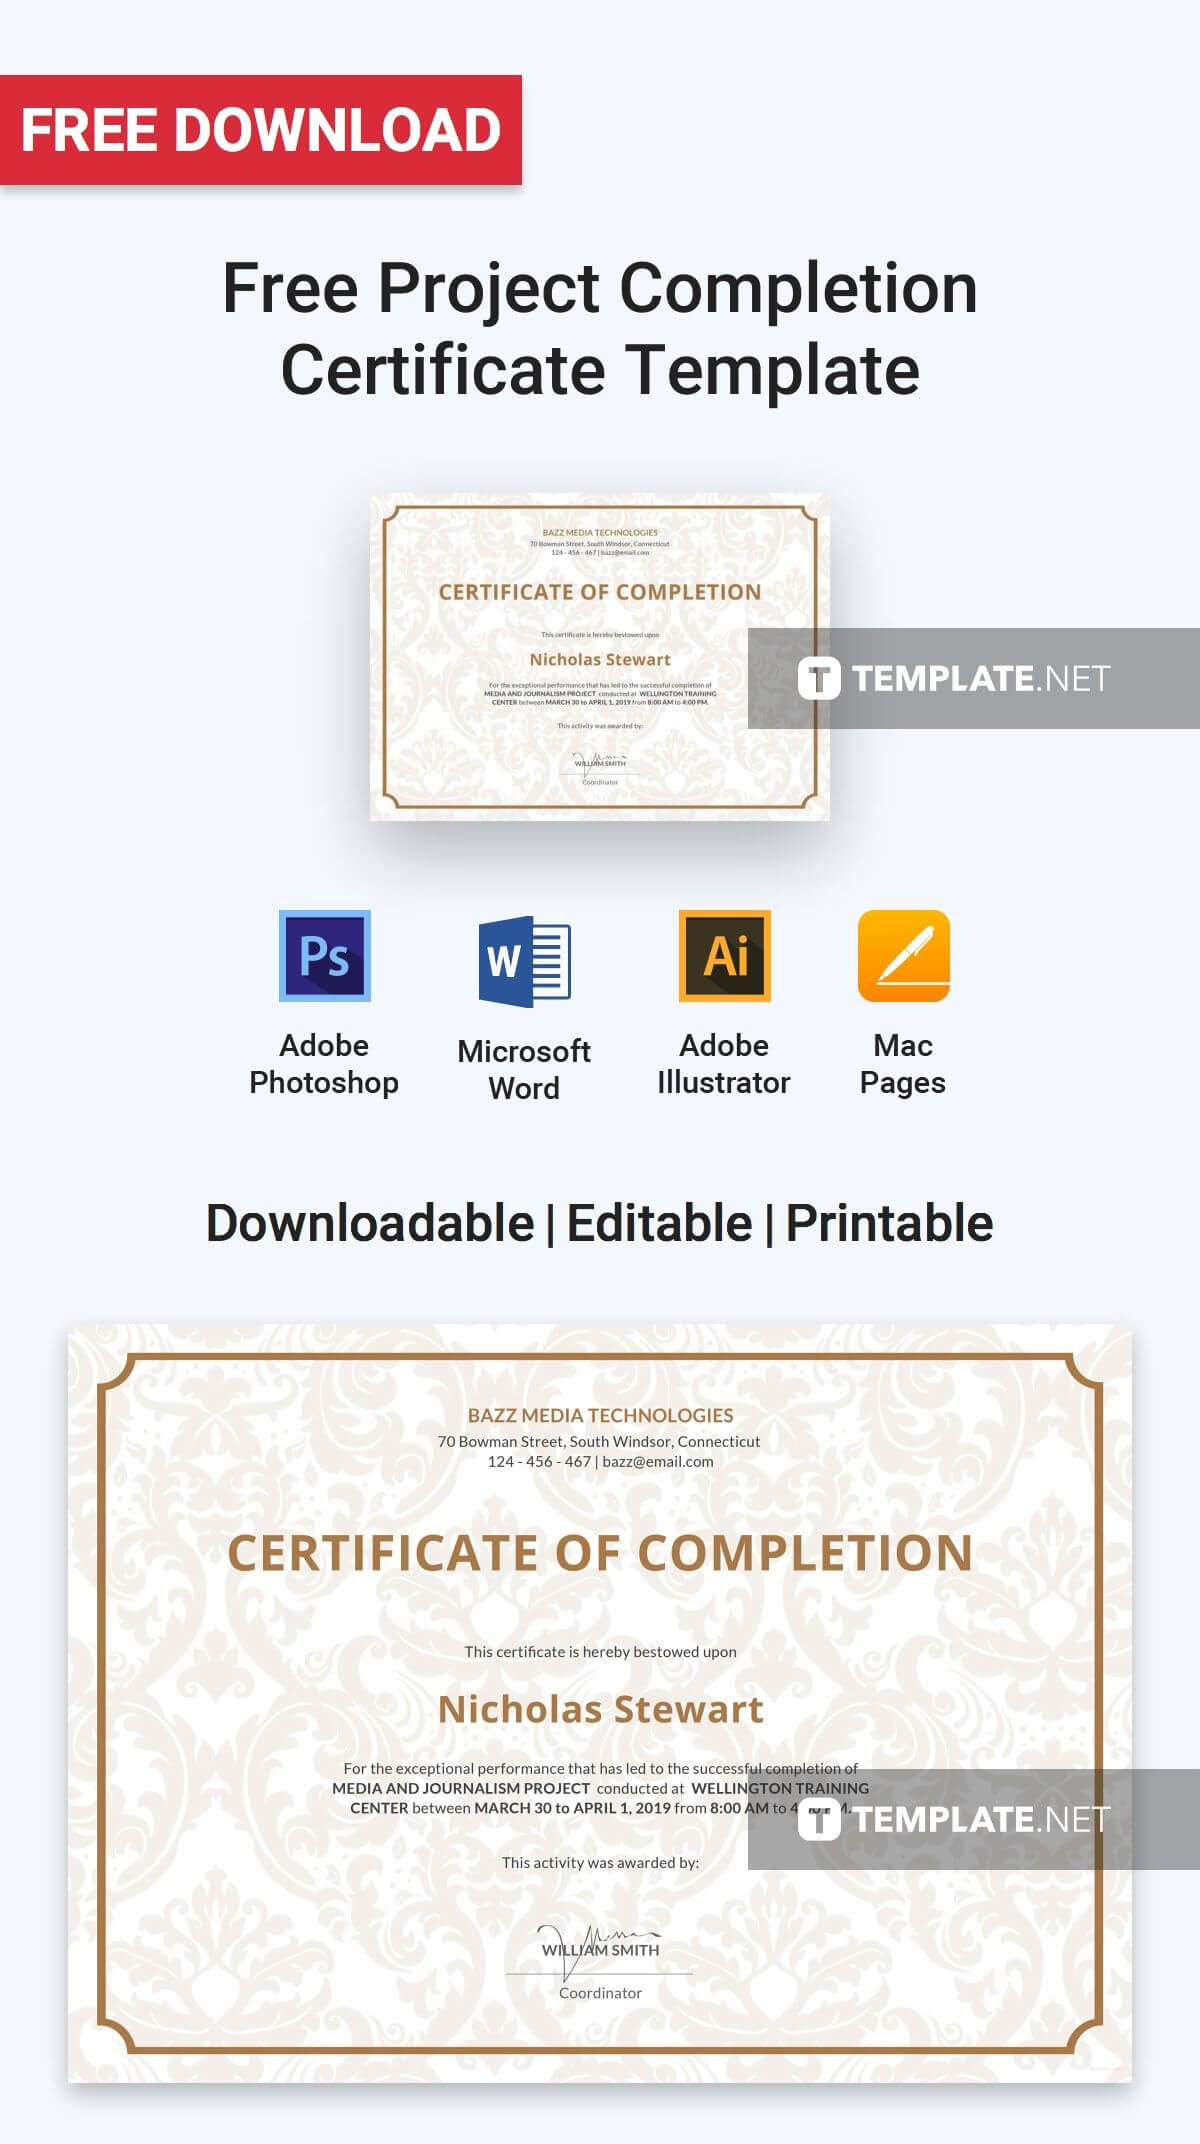 Free Project Completion Certificate | Certificate Templates Inside Certificate Template For Project Completion